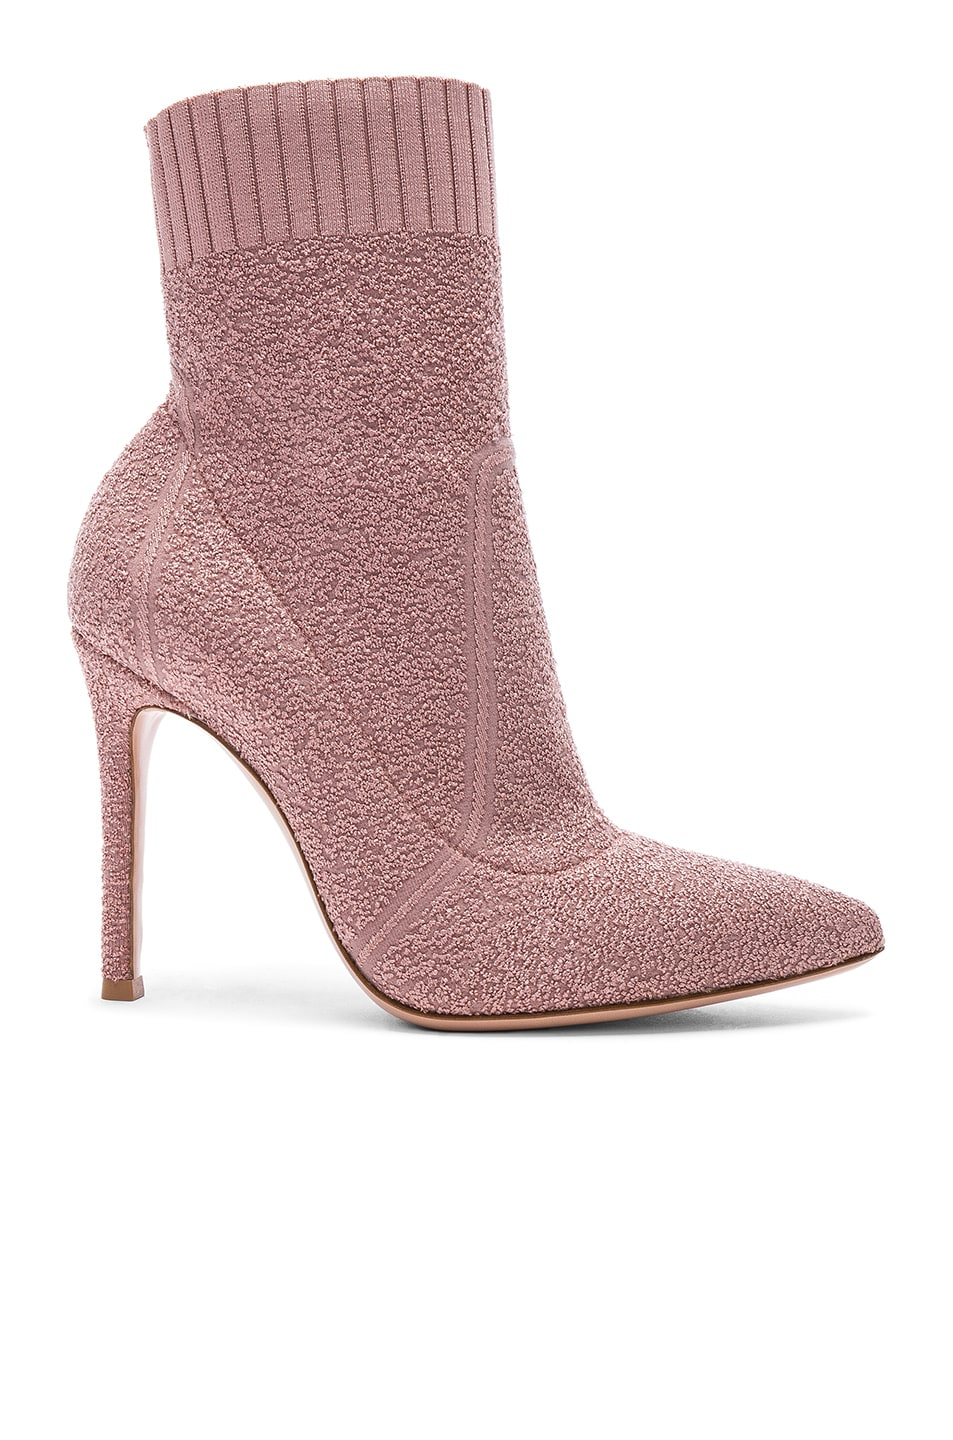 Image 1 of Gianvito Rossi Boucle Knit Fiona Ankle Booties in Dahlia